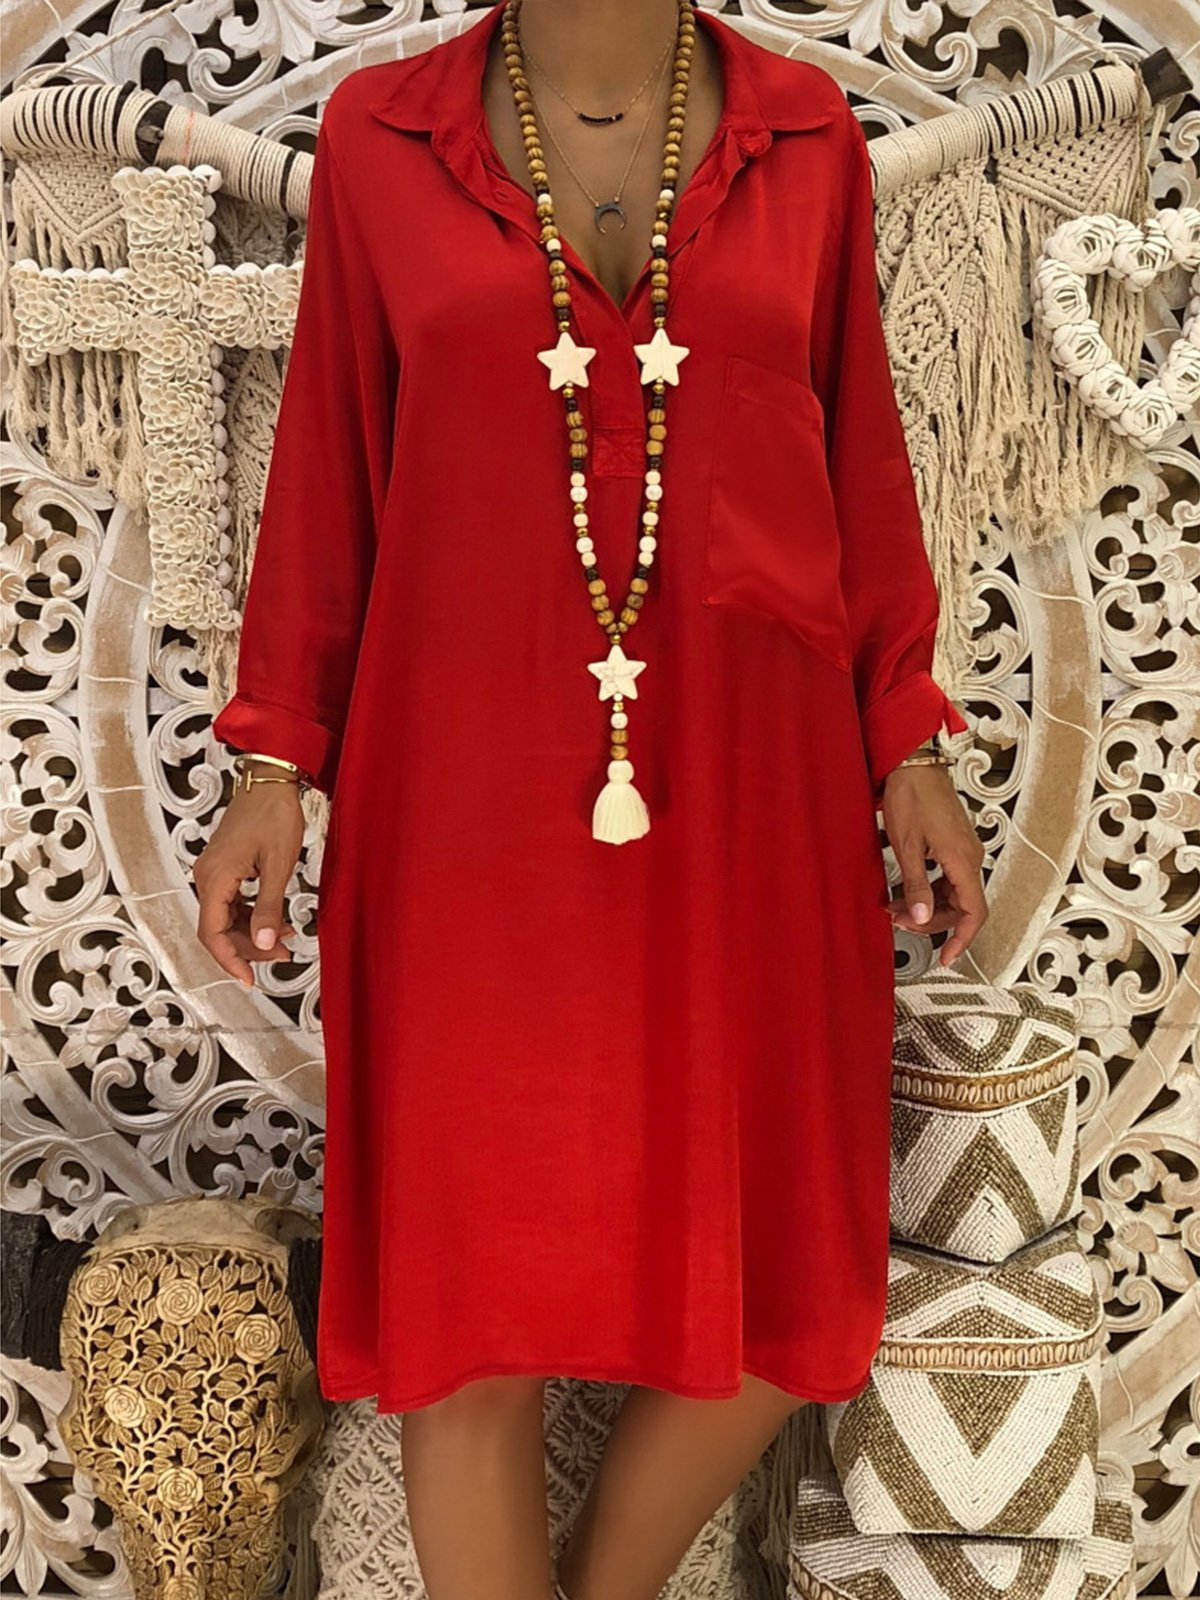 f31c81b6b4 V-Neck Red Shift Women Daily Long Sleeve Casual Cotton Solid Spring Dress